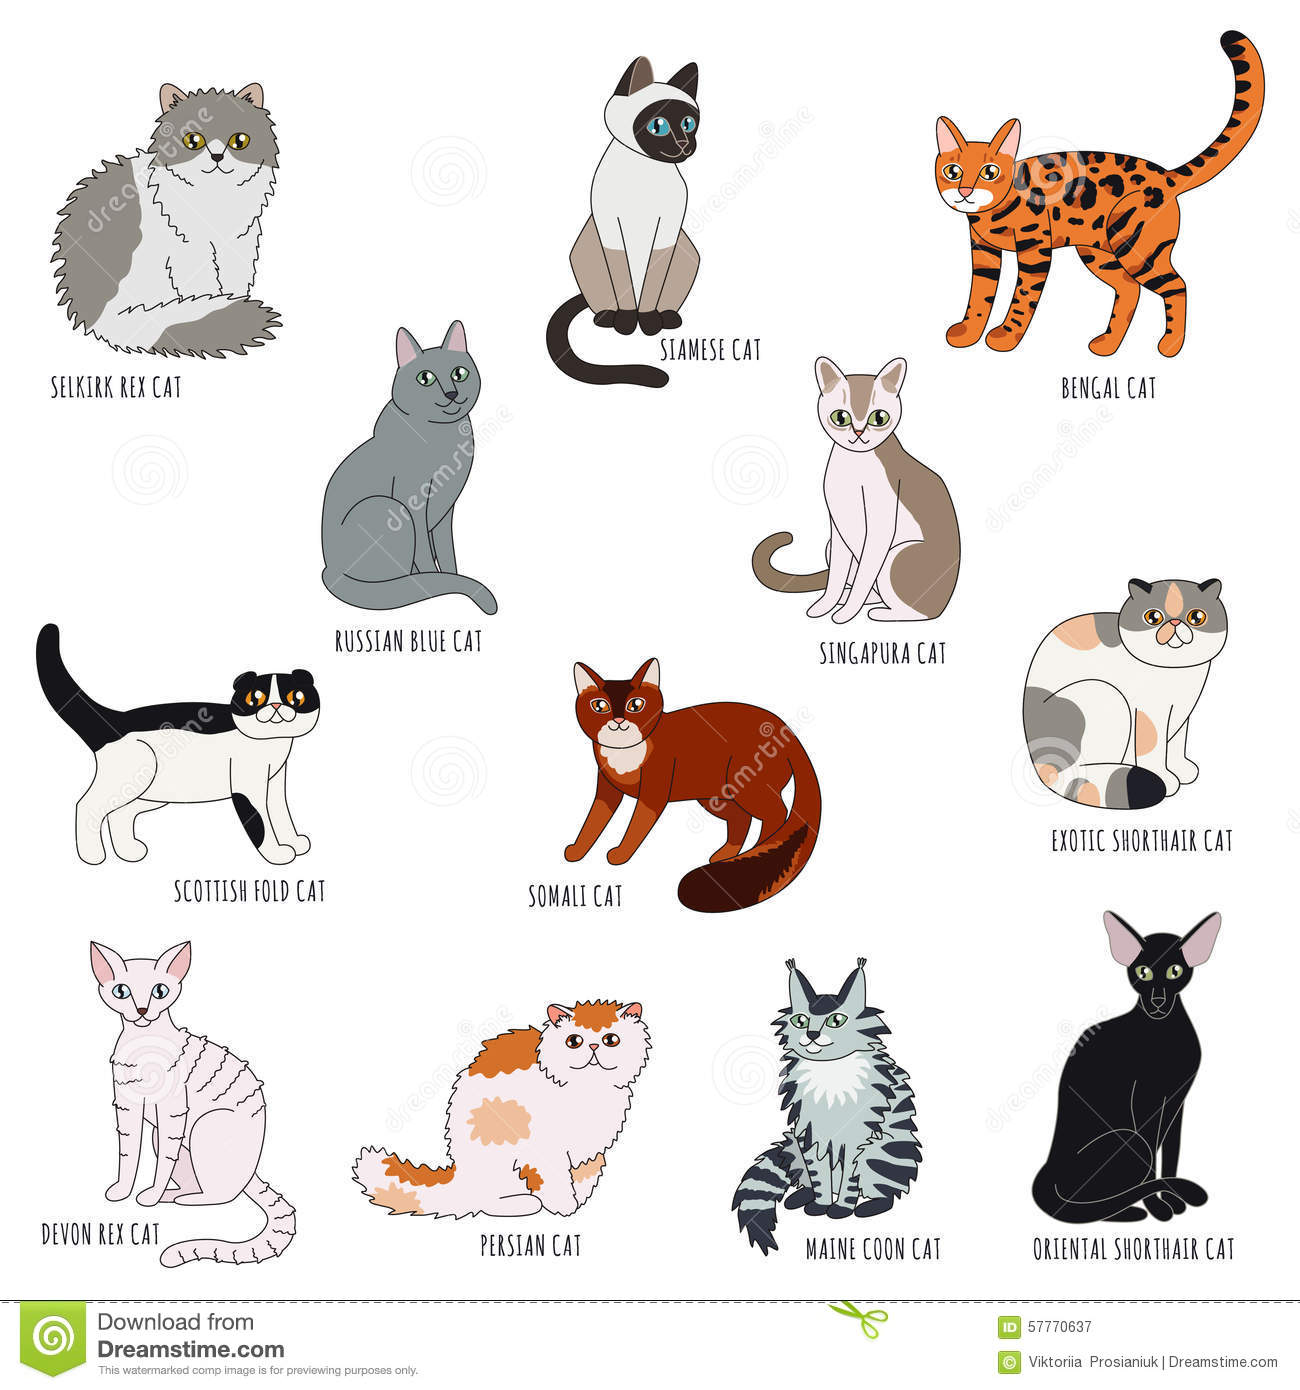 Cat Breeds ThingLink